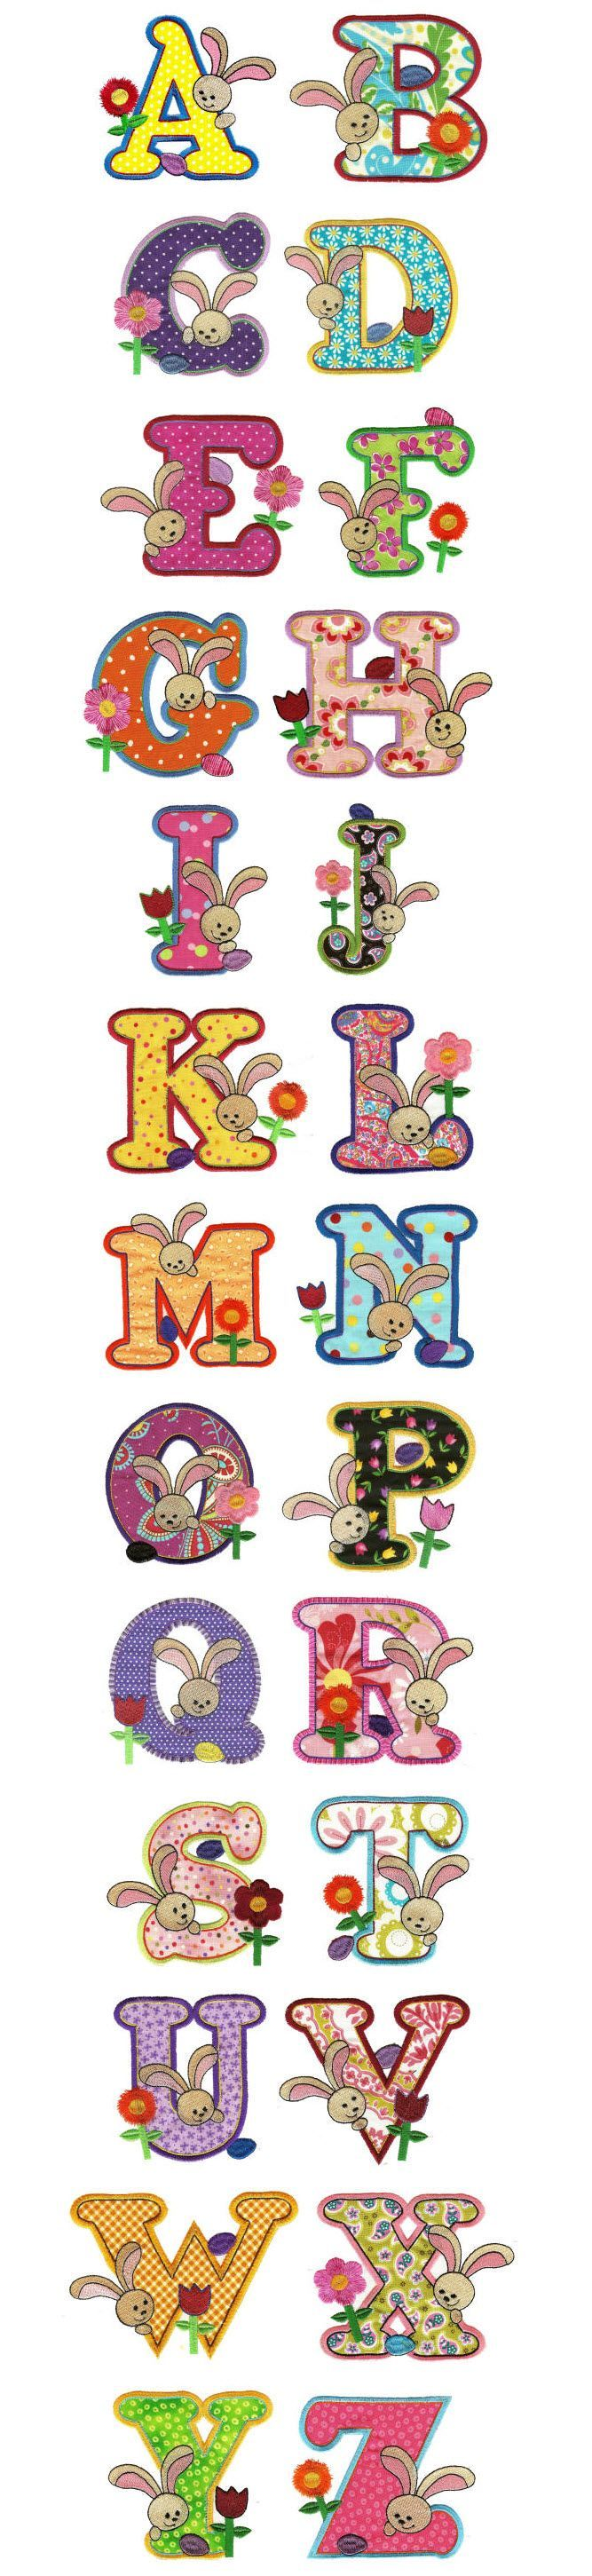 Embroidery   Free Maching Embroidery Designs   Egg Hunt Easter Alphabet Applique